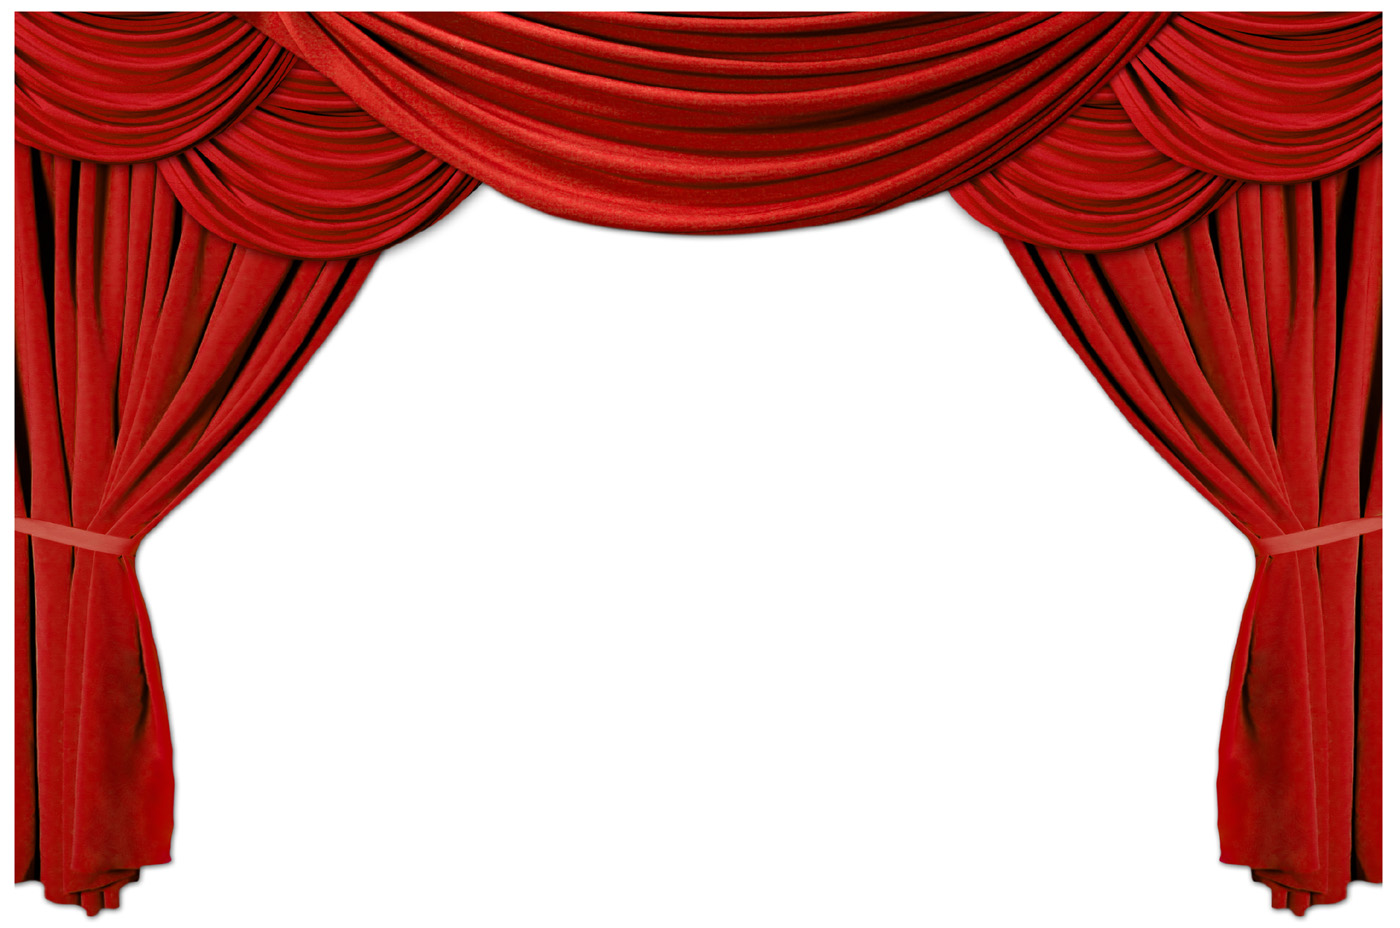 Red curtain curtain 11146